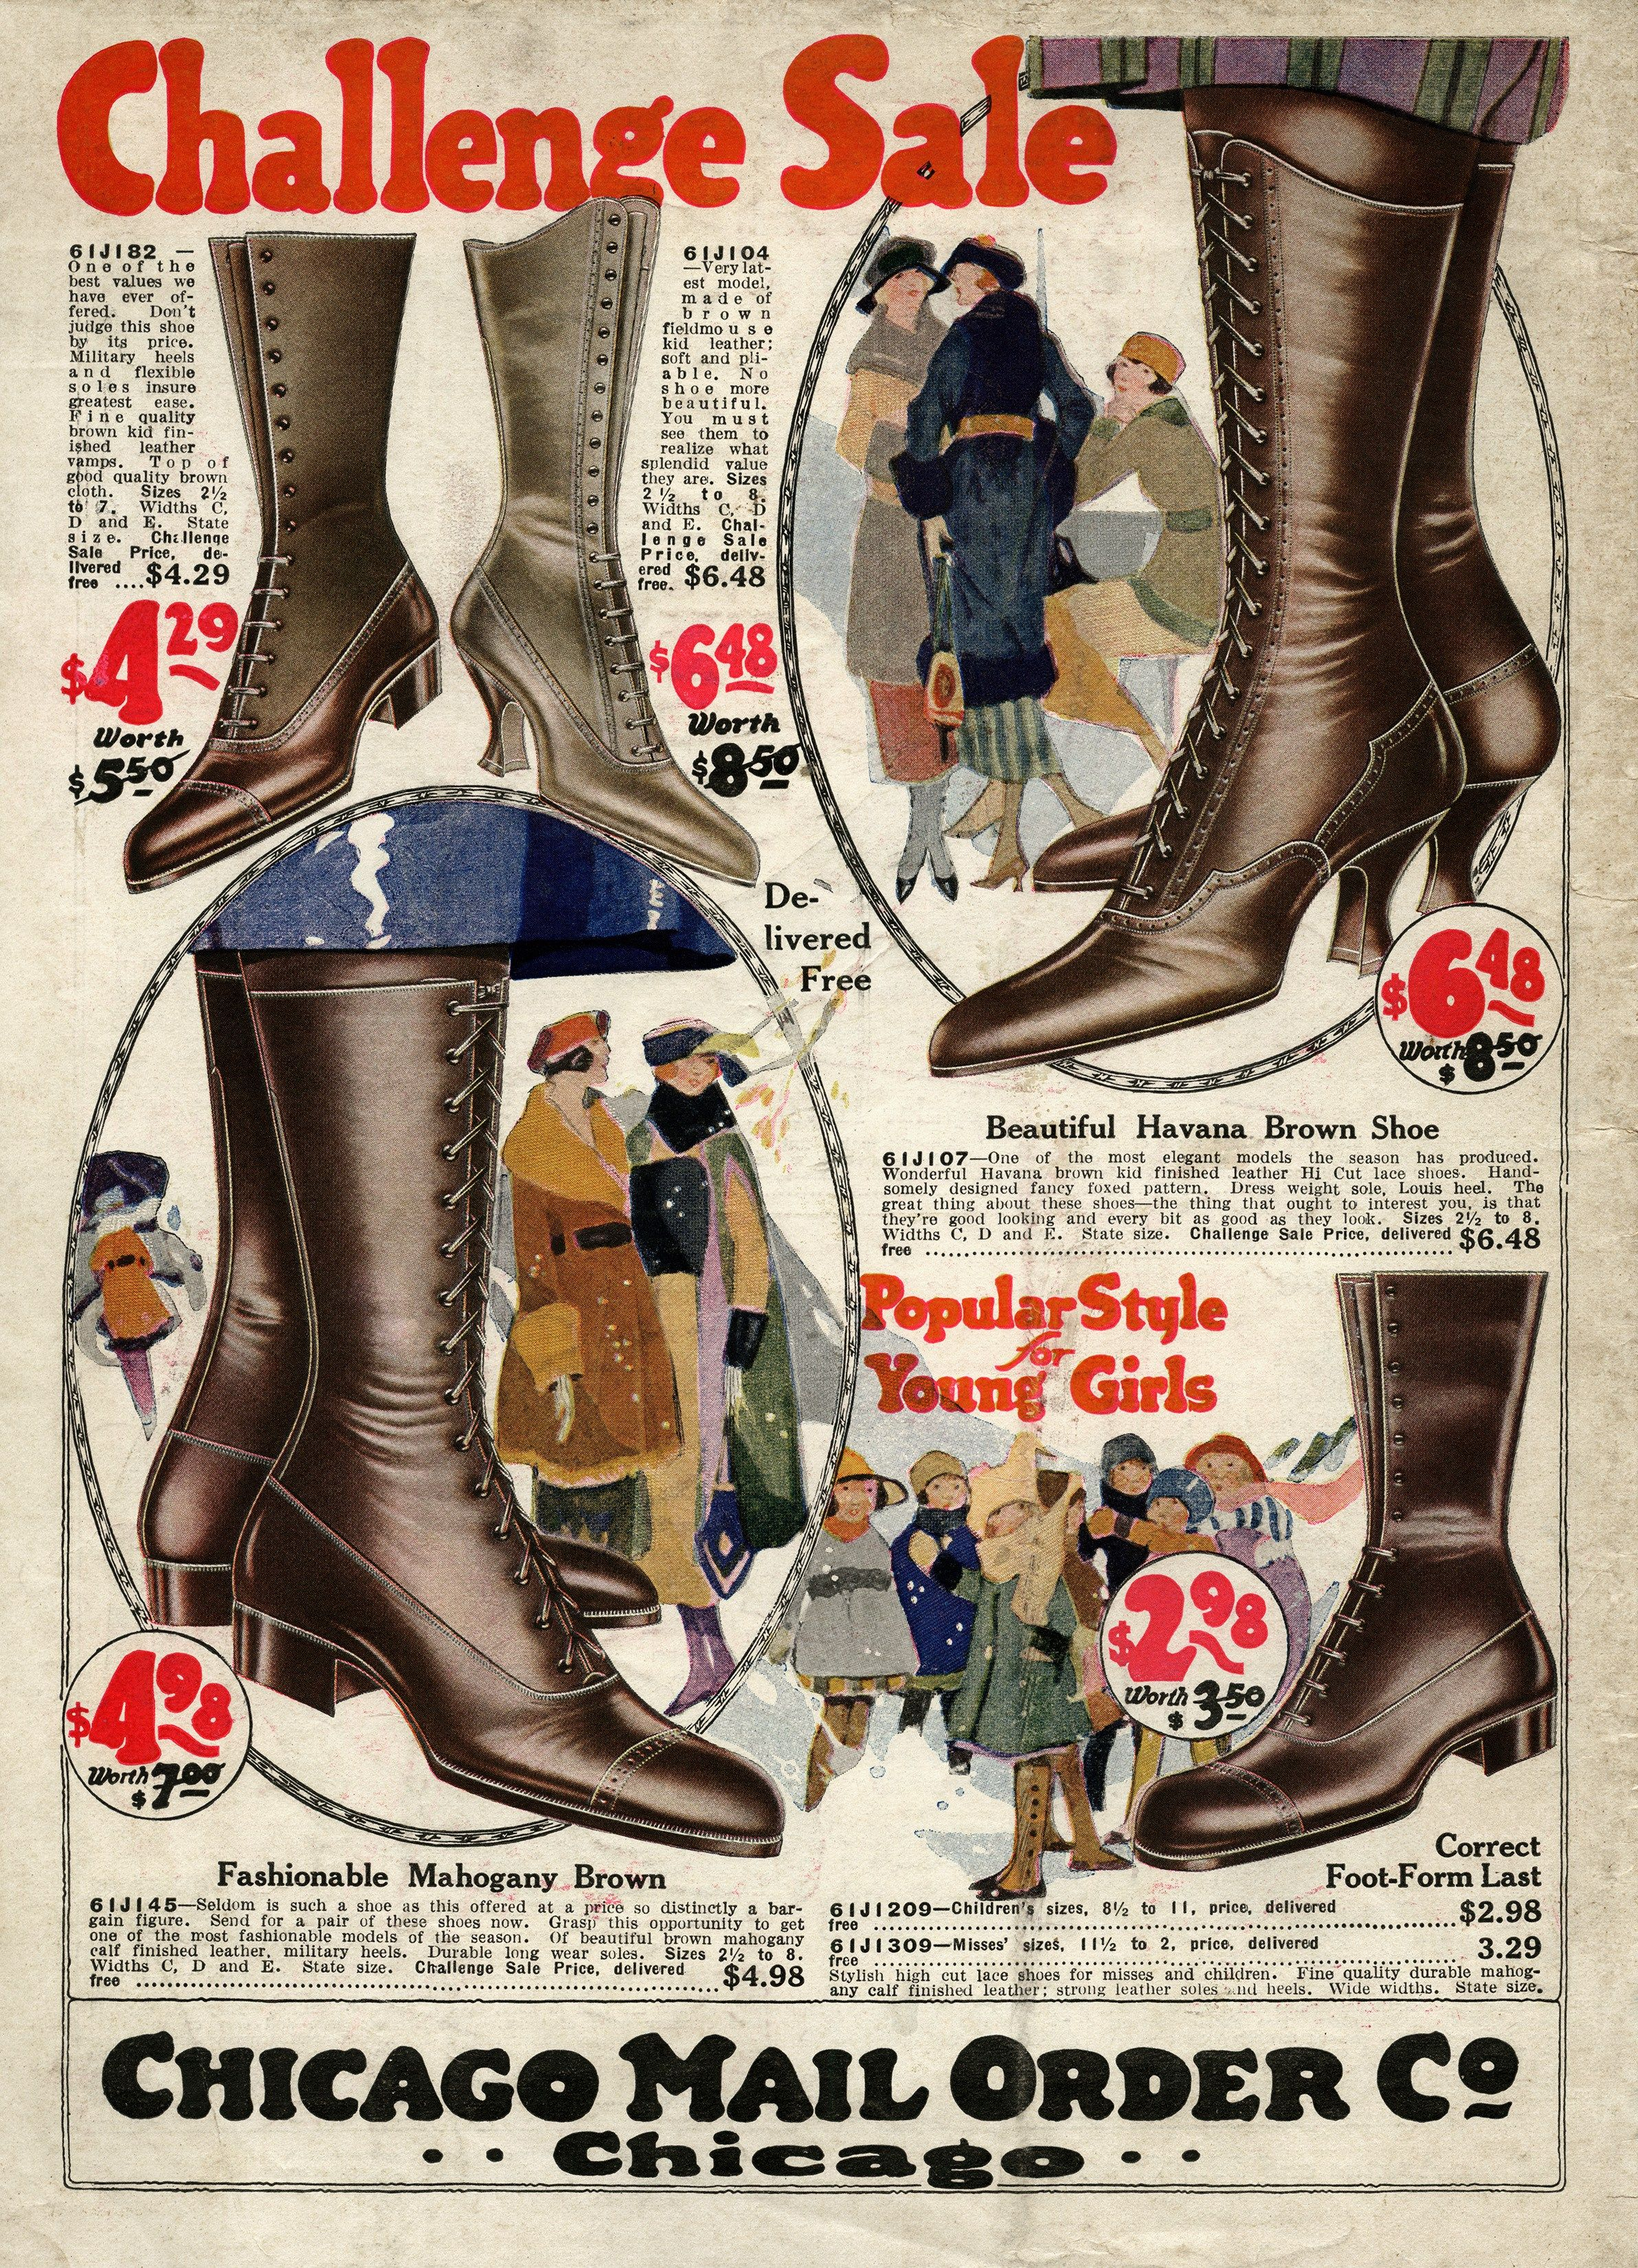 1920s fashion, Chicago mail order co, old fashioned boot